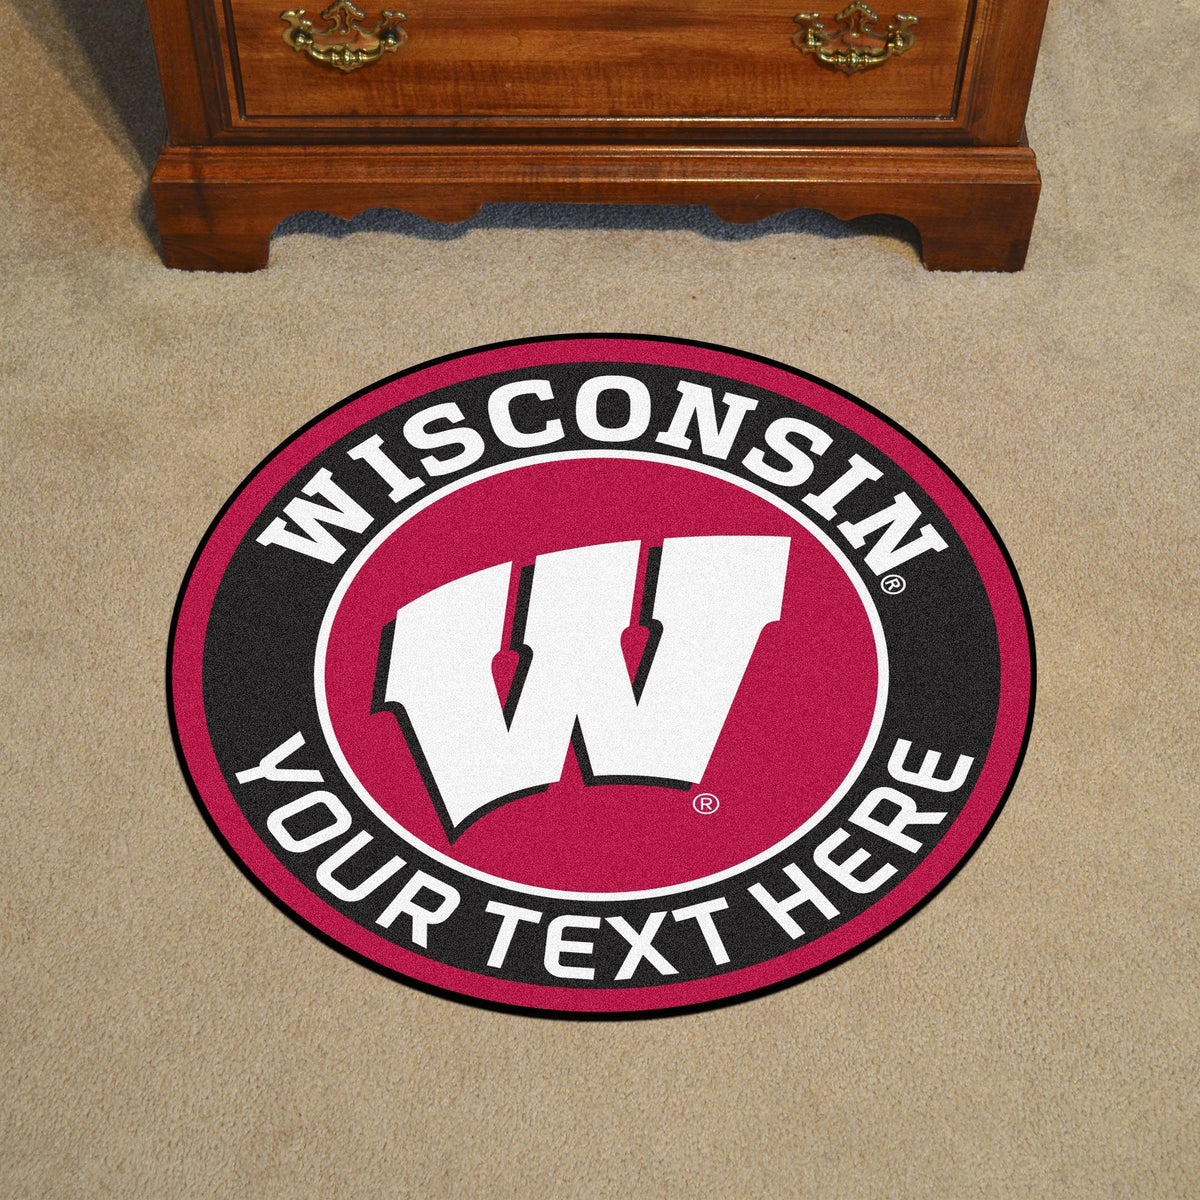 Collegiate Personalized Roundel Mat Personalized Roundel Mat Fan Mats University of Wisconsin